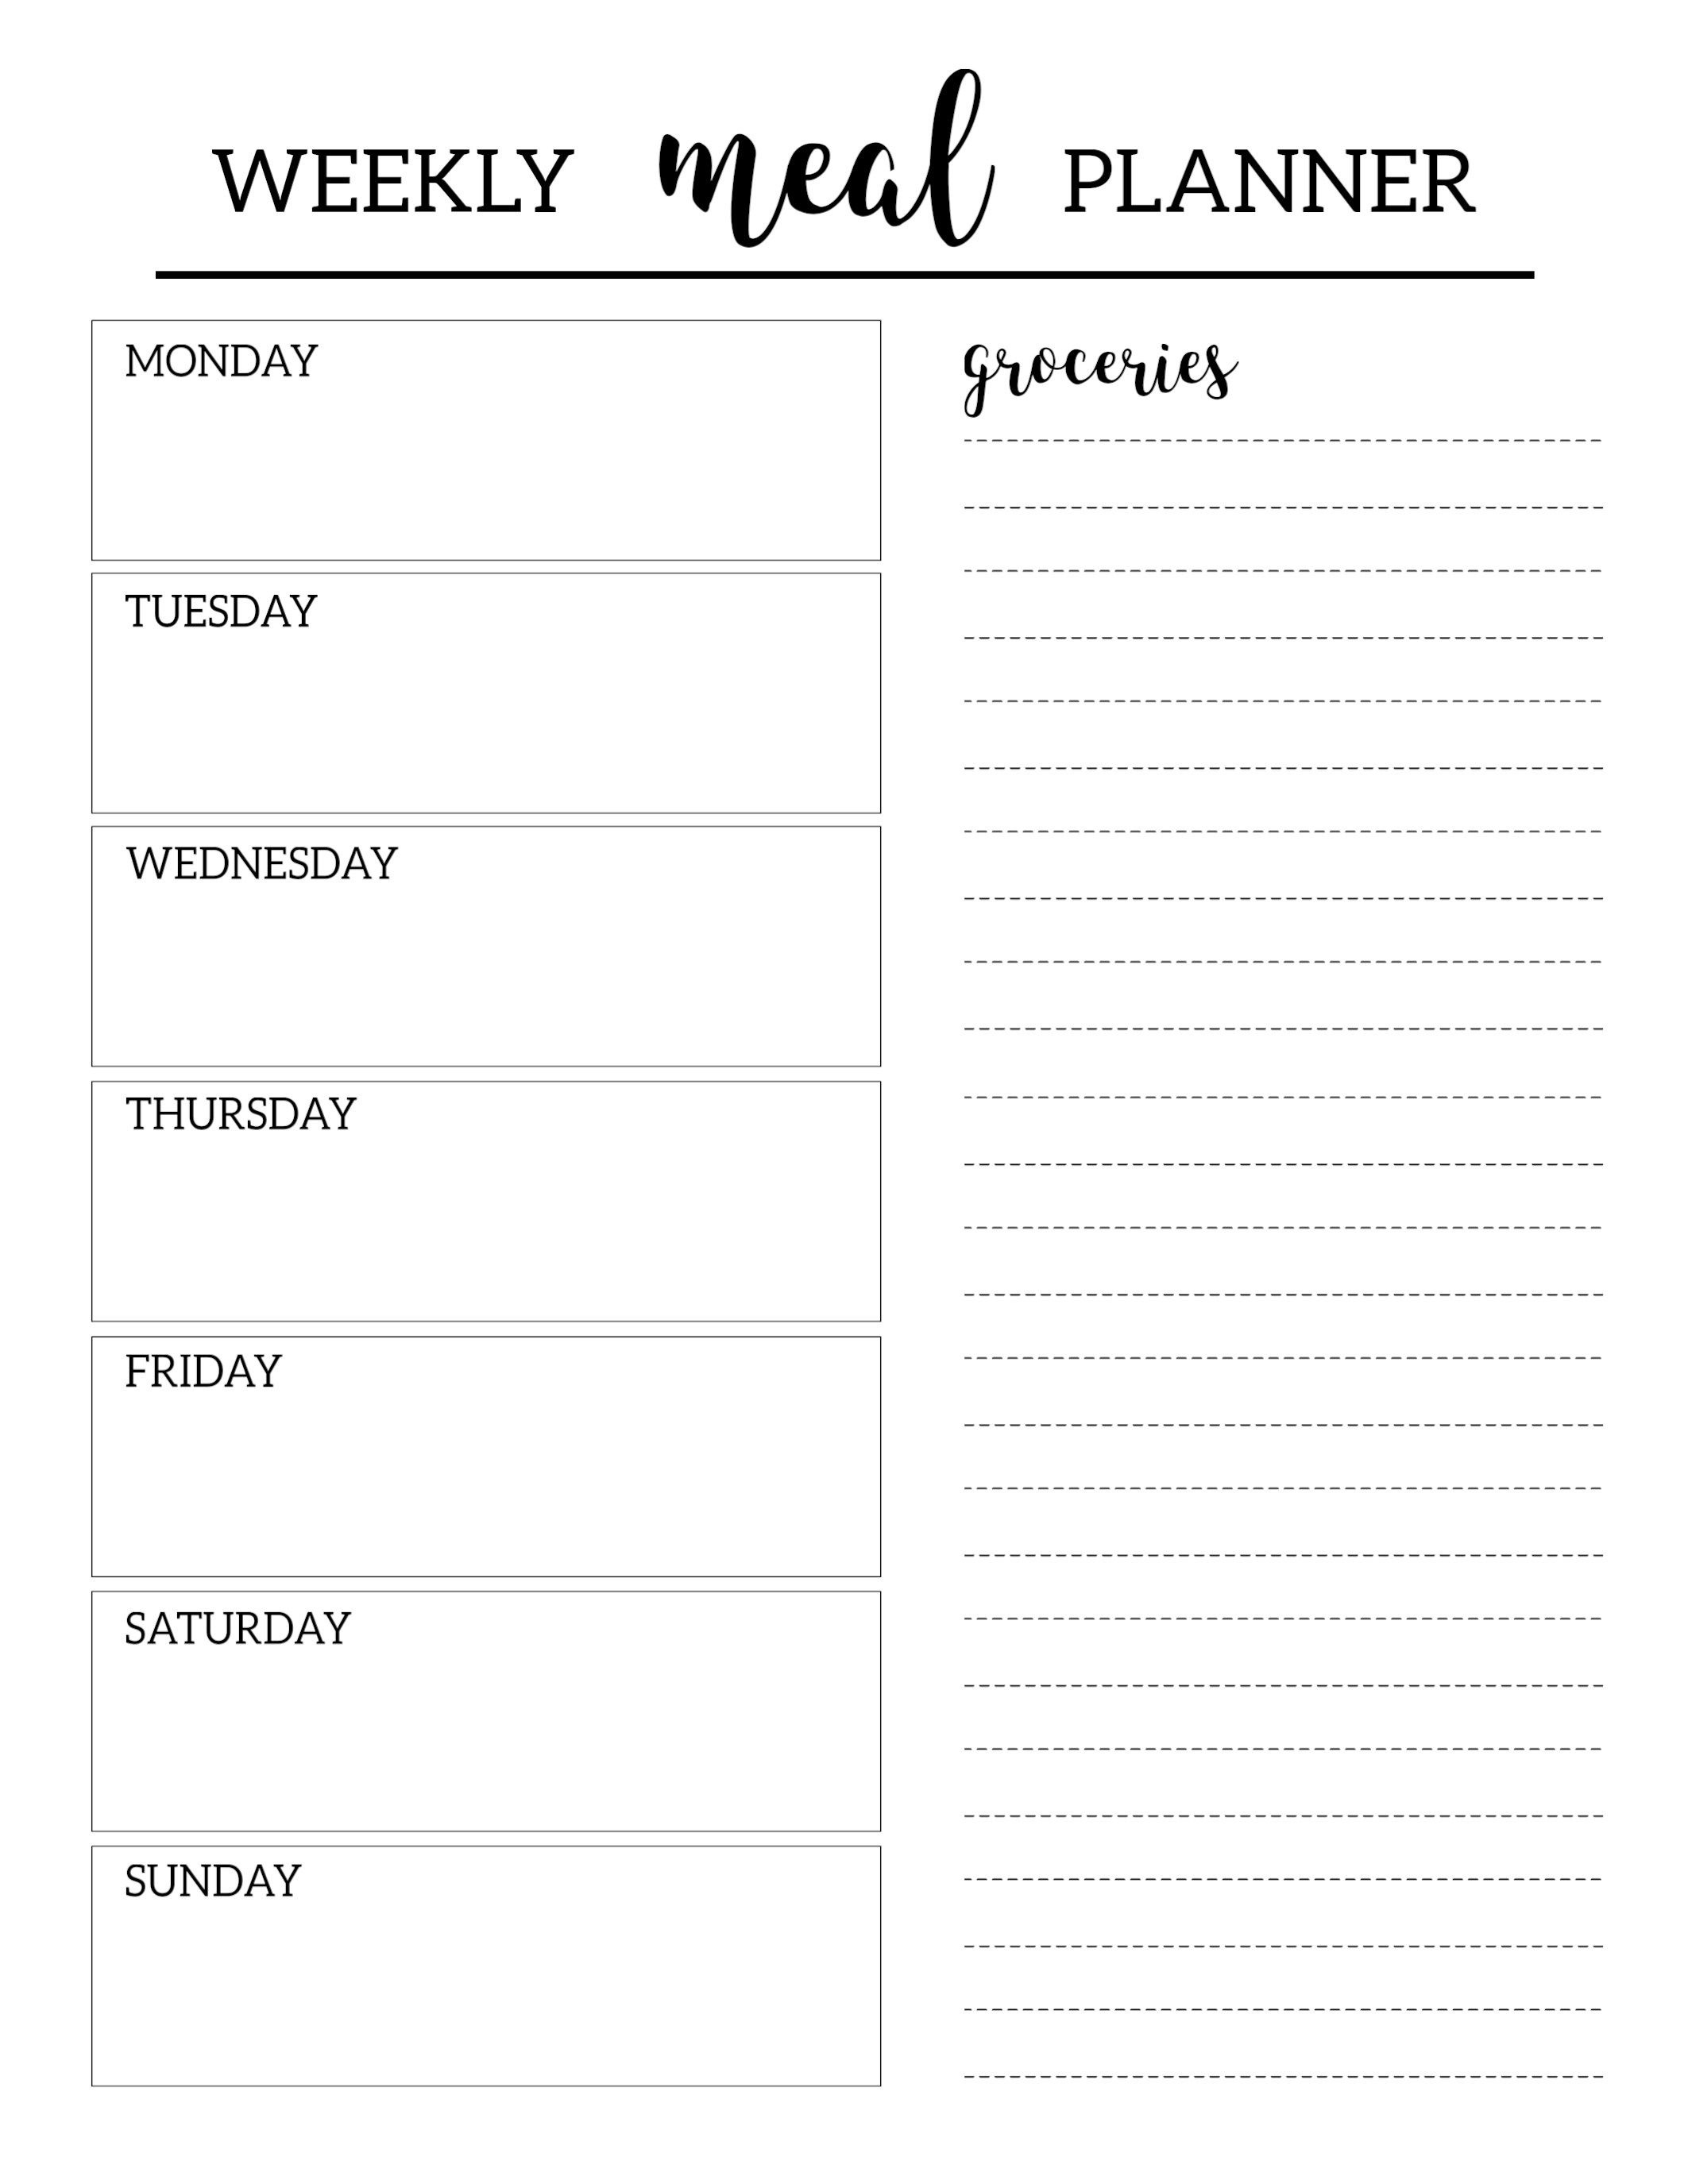 Free Printable Meal Planner Template | Organization | Meal Planner - Free Printable Menu